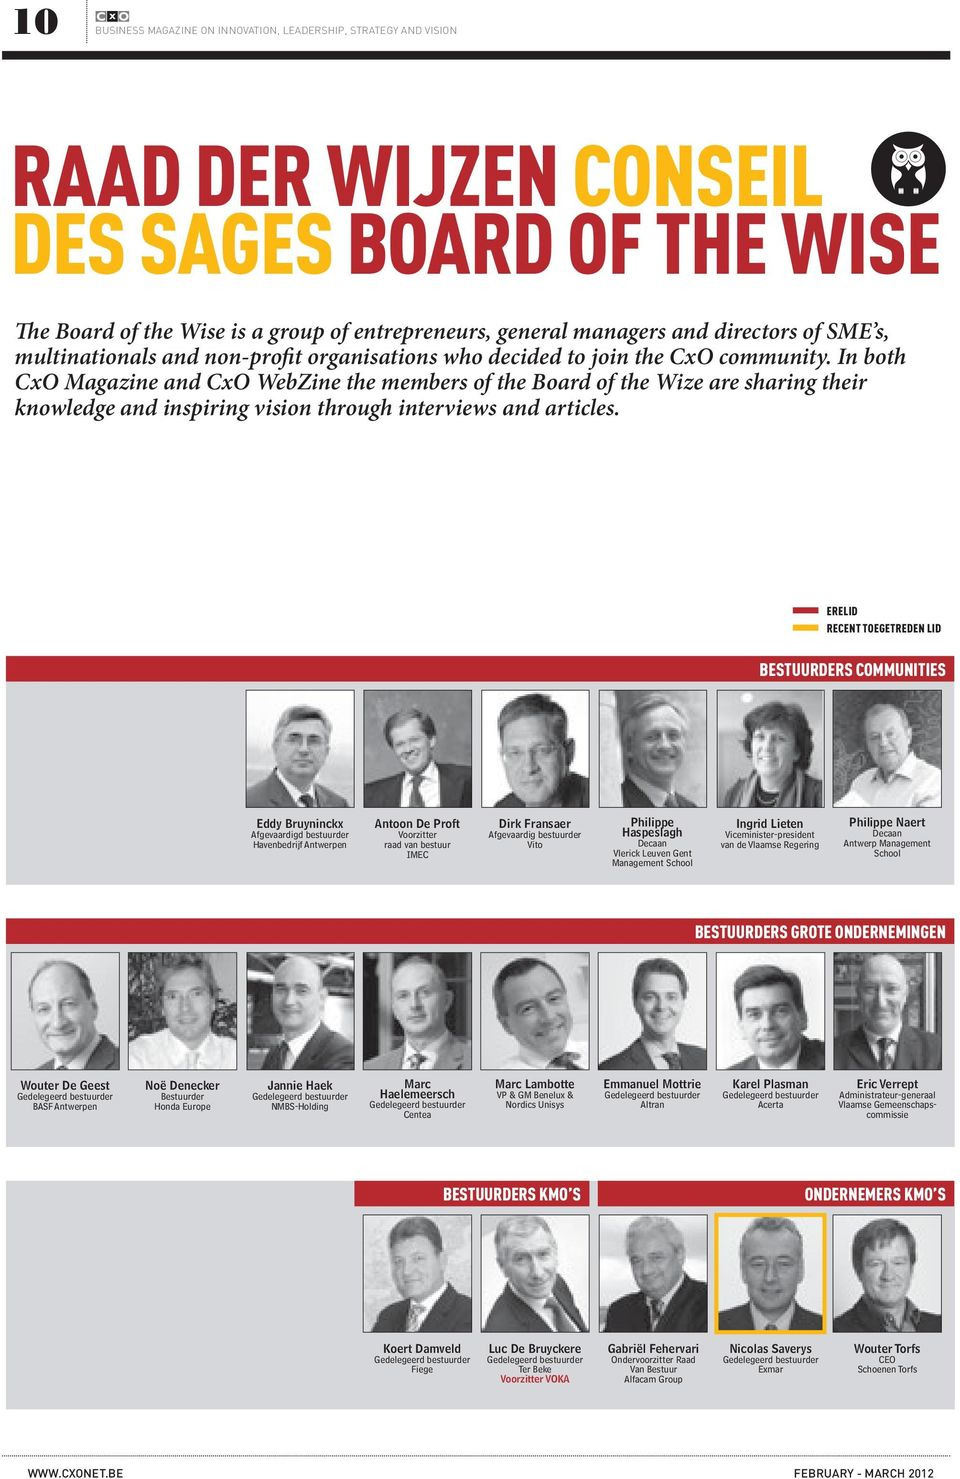 In both CxO Magazine and CxO WebZine the members of the Board of the Wize are sharing their knowledge and inspiring vision through interviews and articles.